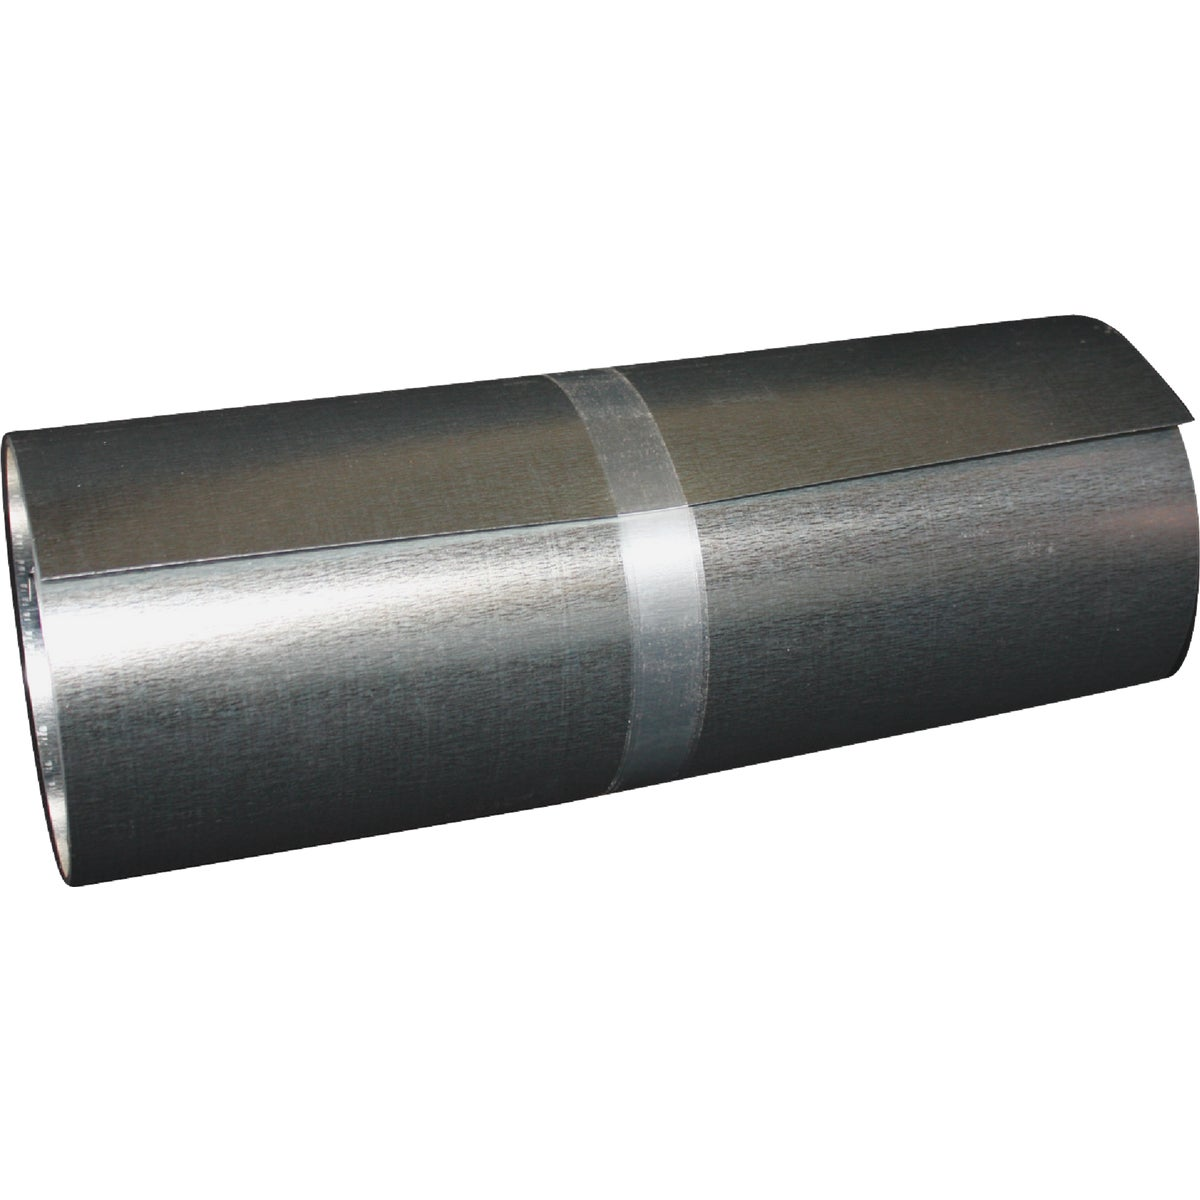 "12""X50' GALV ROLL VALLEY - 30040-GV10 by Klauer Mfg Co"